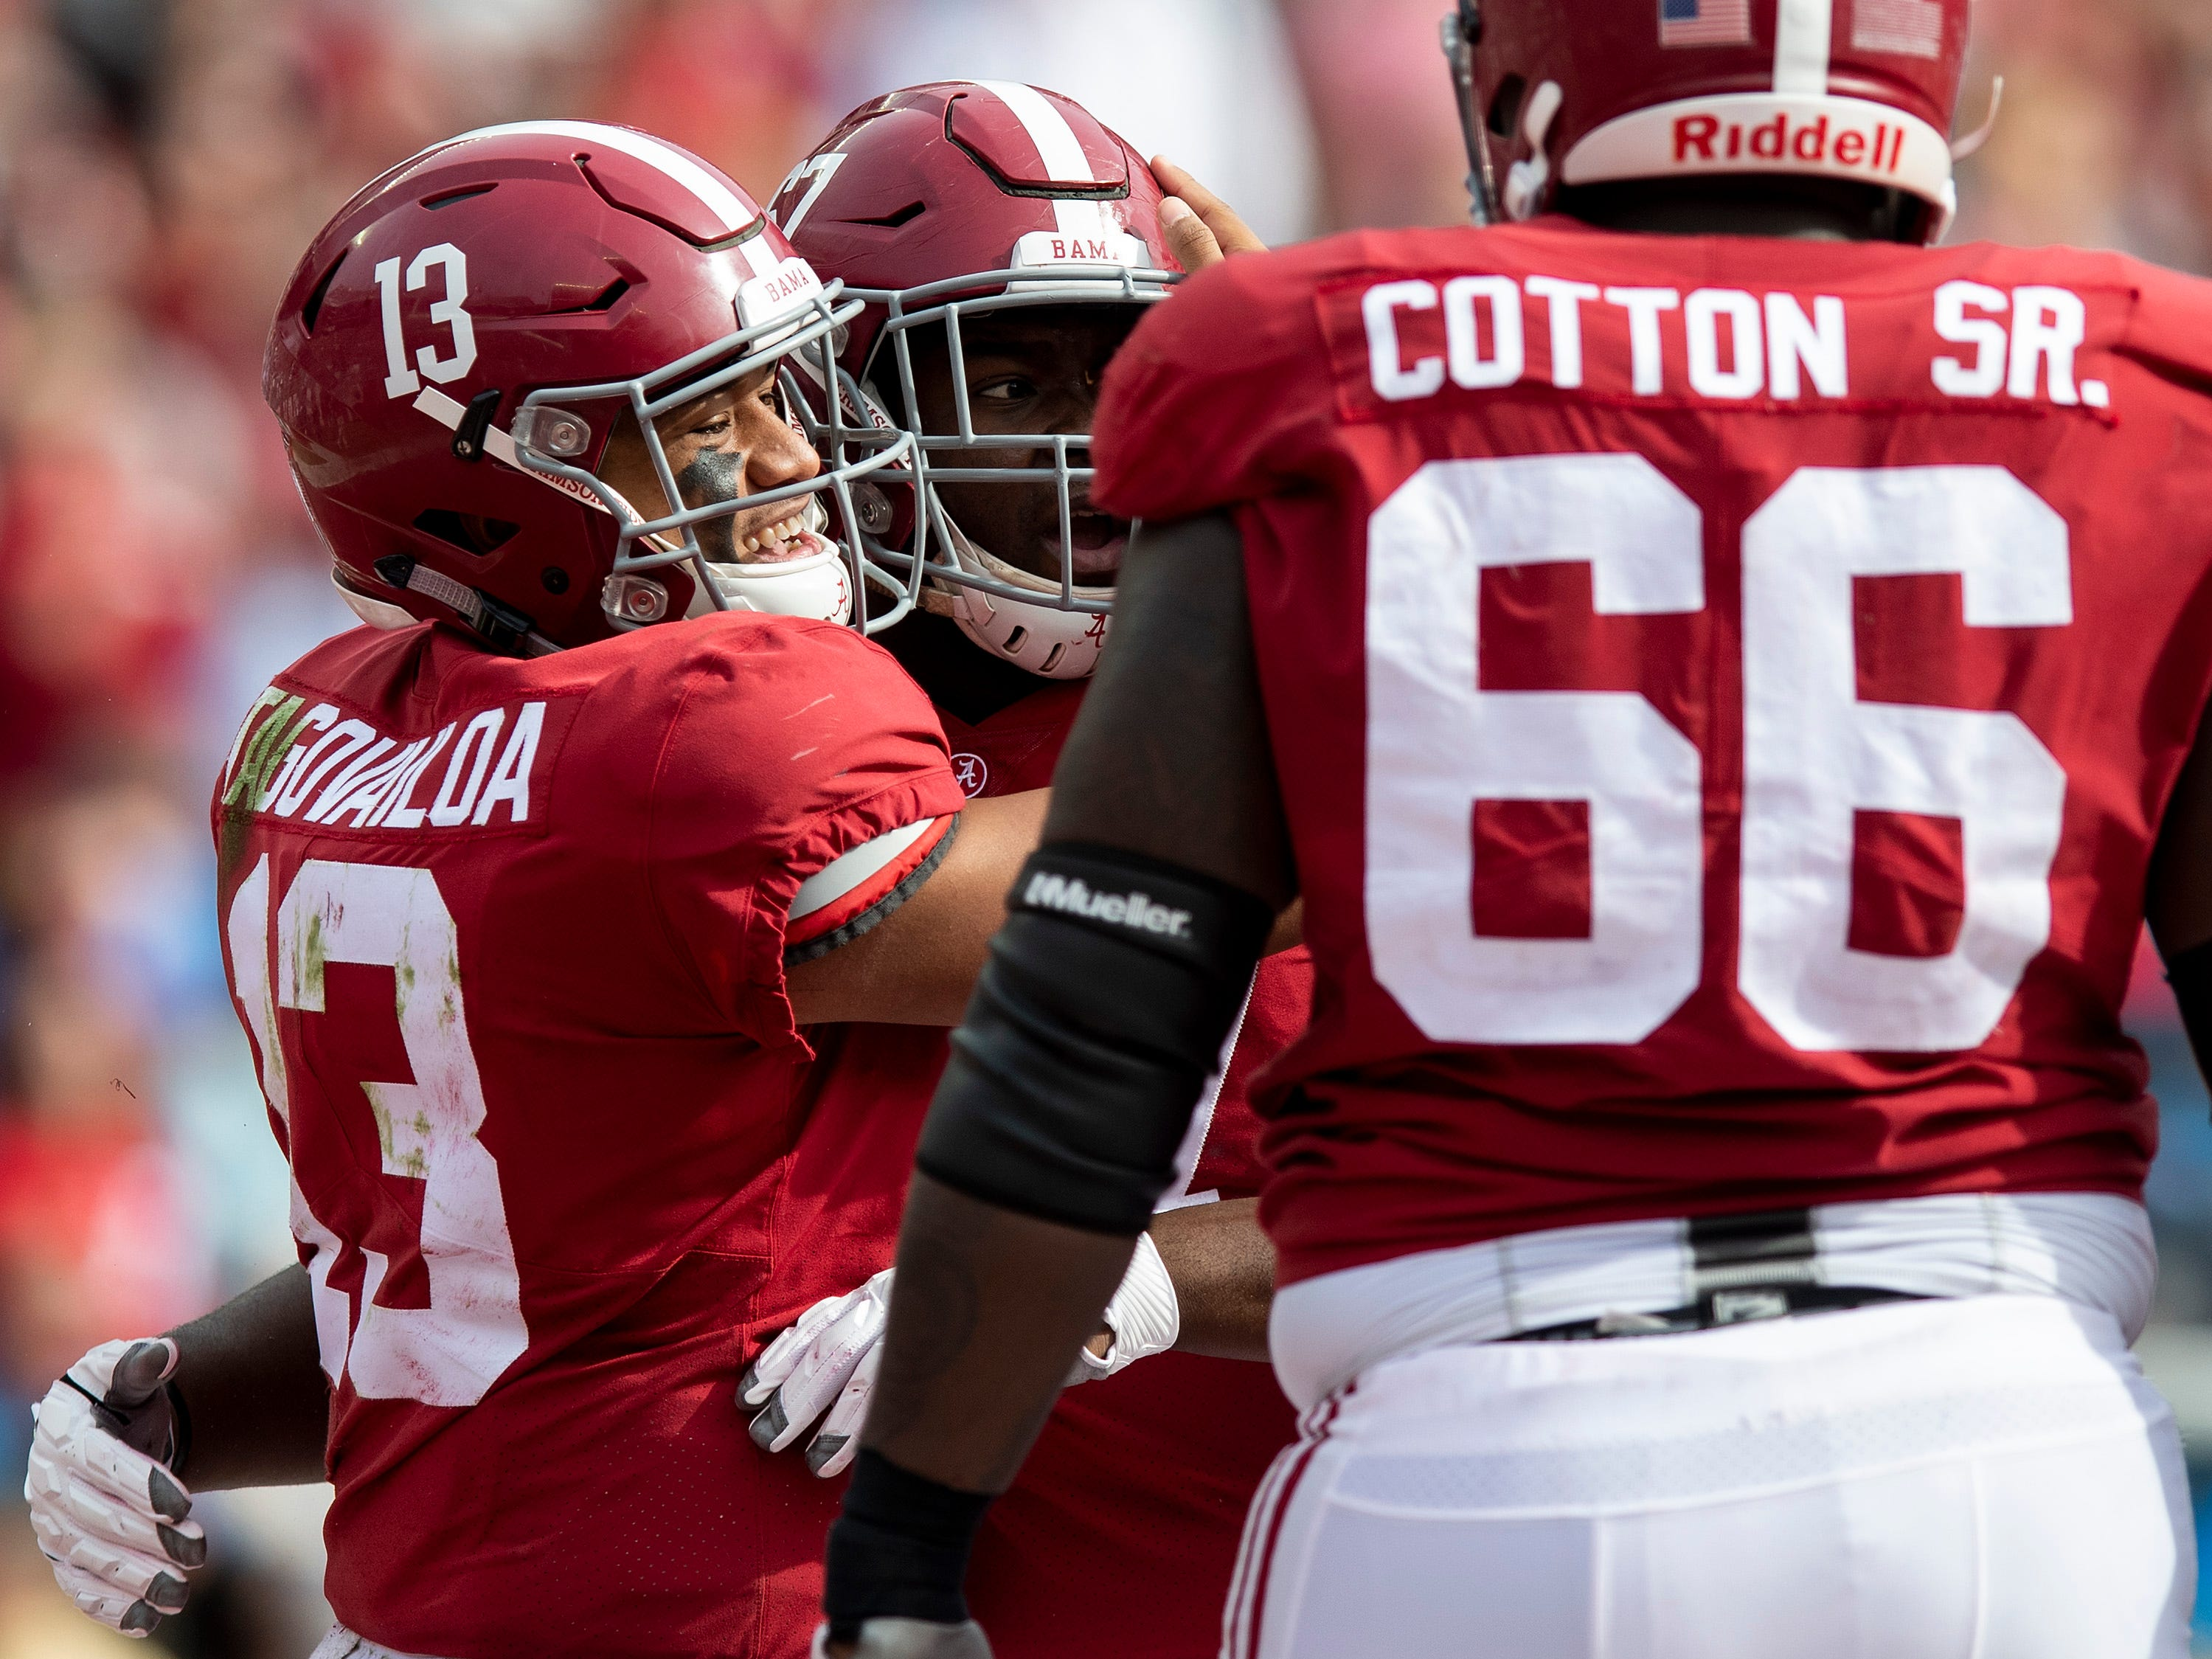 Alabama quarterback Tua Tagovailoa (13) hugs offensive lineman Josh Casher (67) after rushing for a touchdown against The Citadel in second half action at Bryant-Denny Stadium in Tuscaloosa, Ala., on Saturday November 17, 2018.